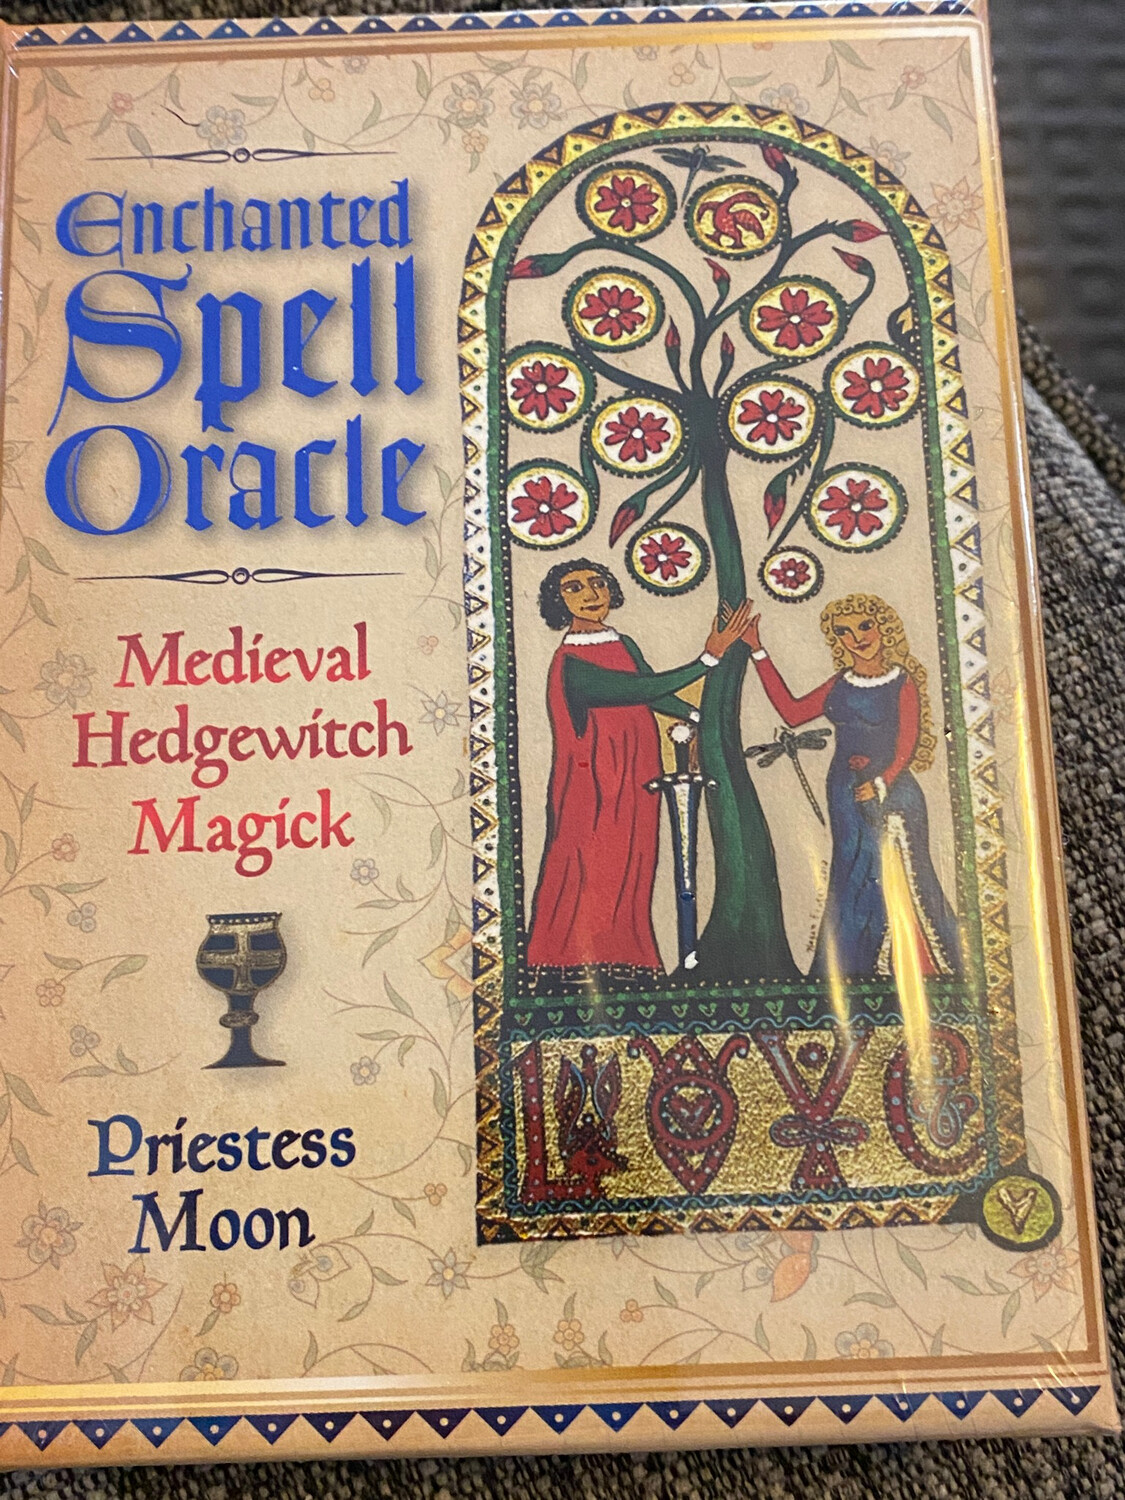 Enchanted Spell Oracle Deck by Priestess Moon